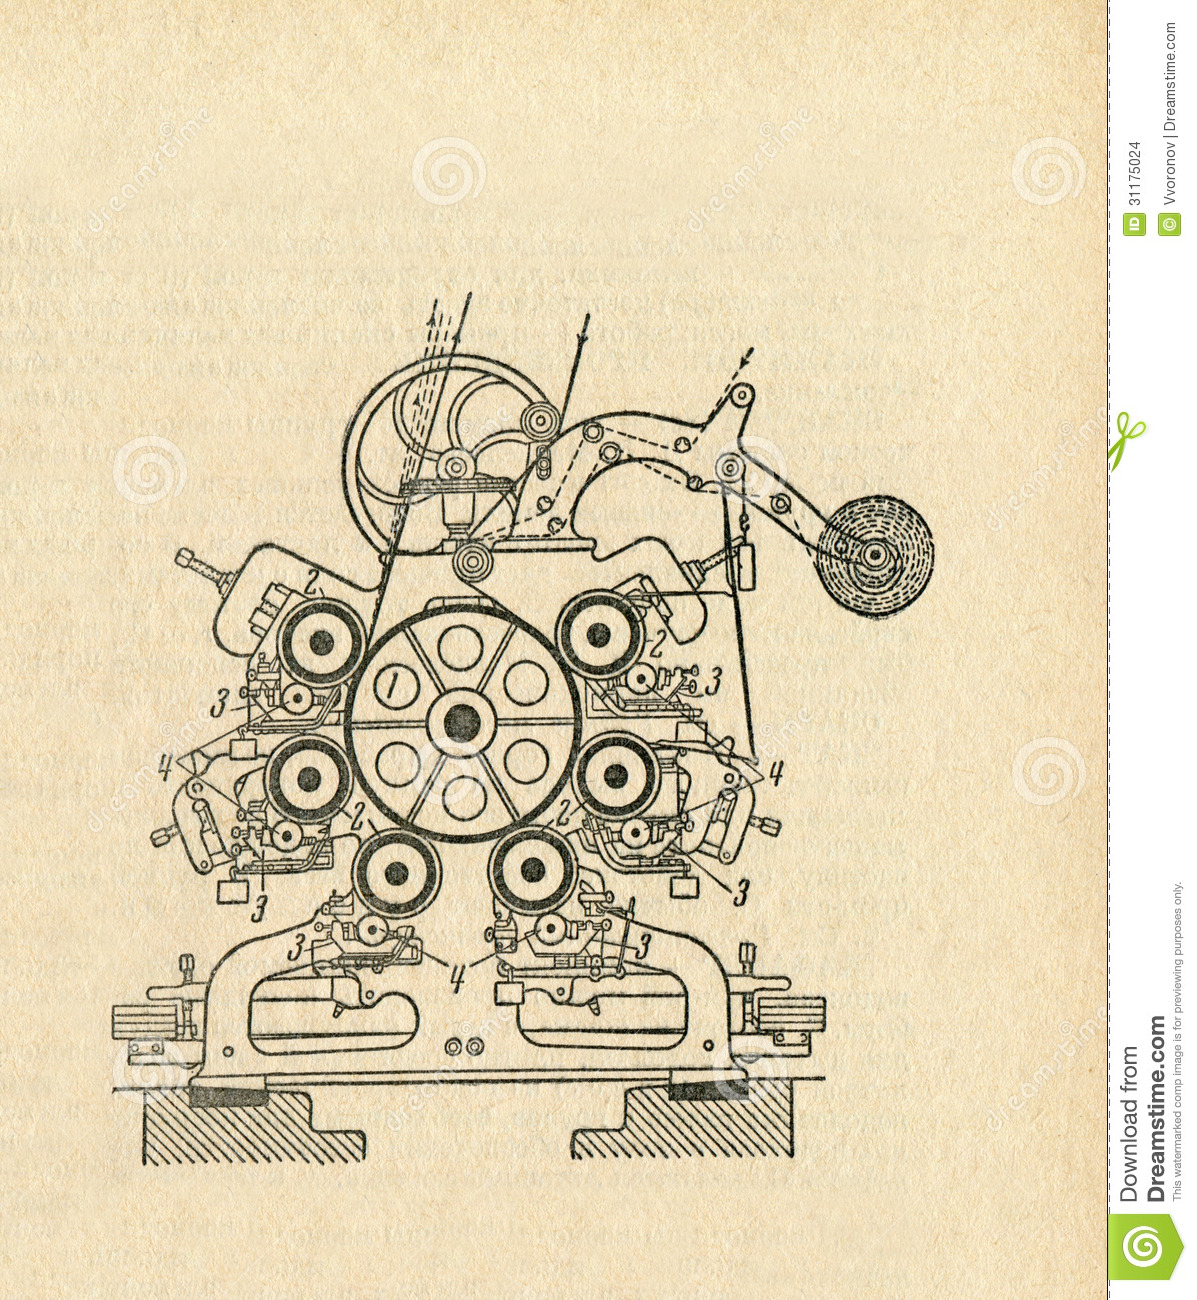 Old Apparatus Diagram Stock Illustration  Illustration Of Design